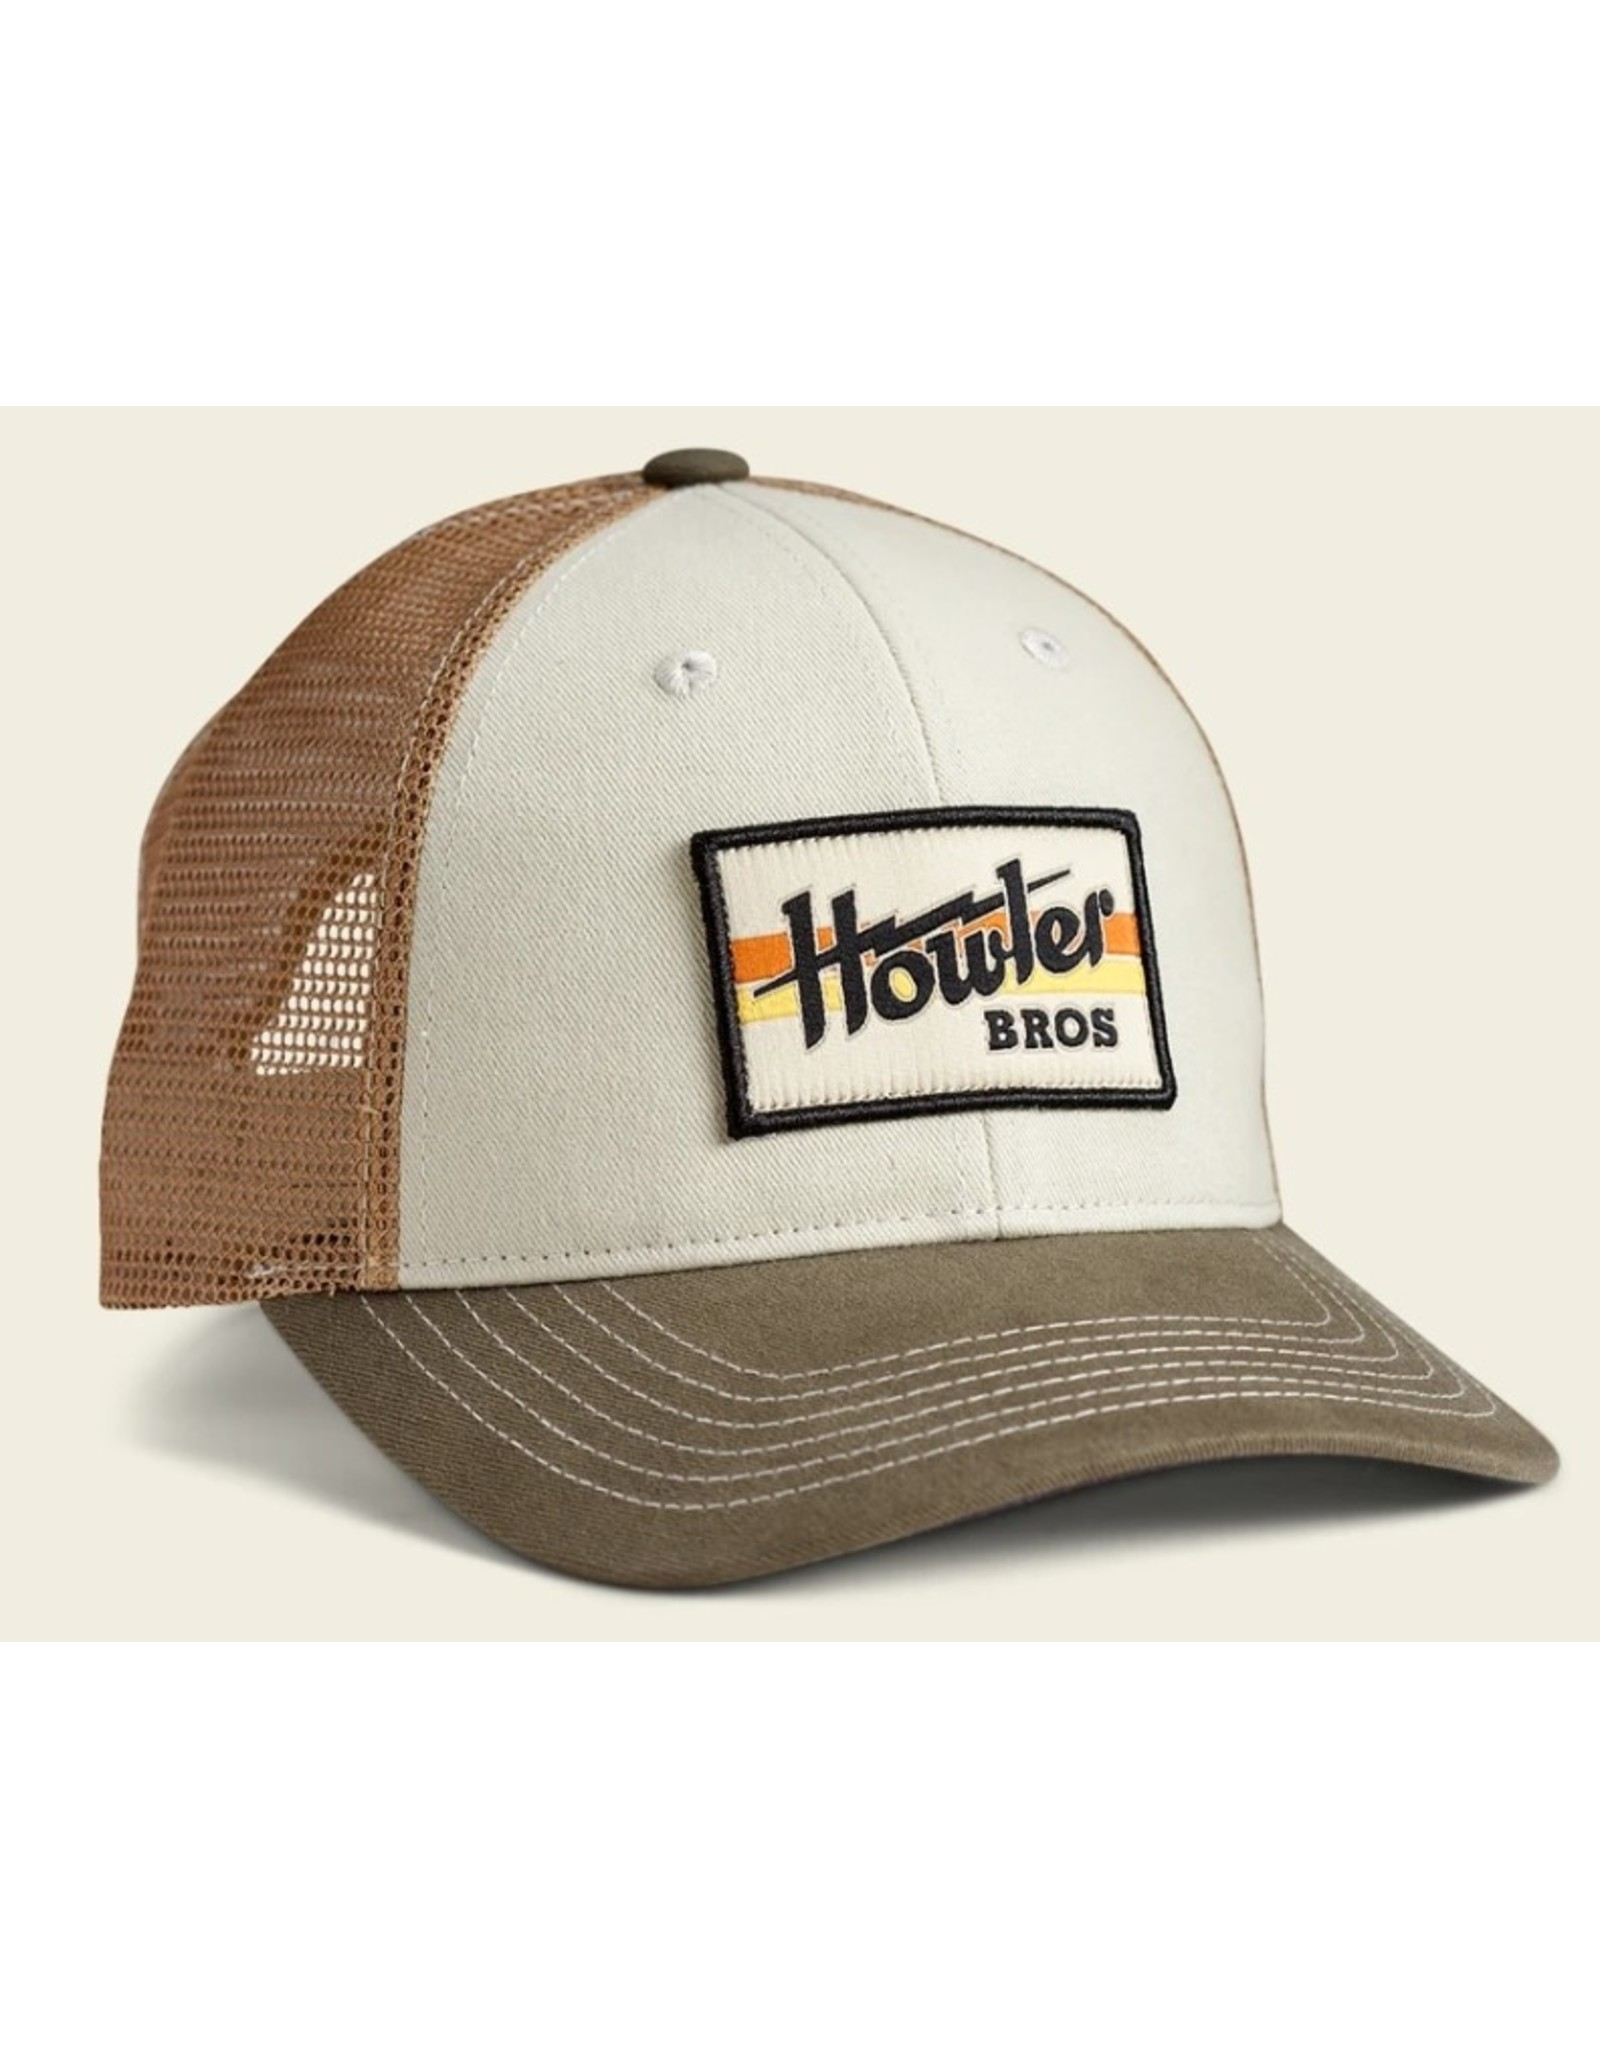 Howler Bros HB Howler Electric Stripe Standard - Stone/Gold/Rifle